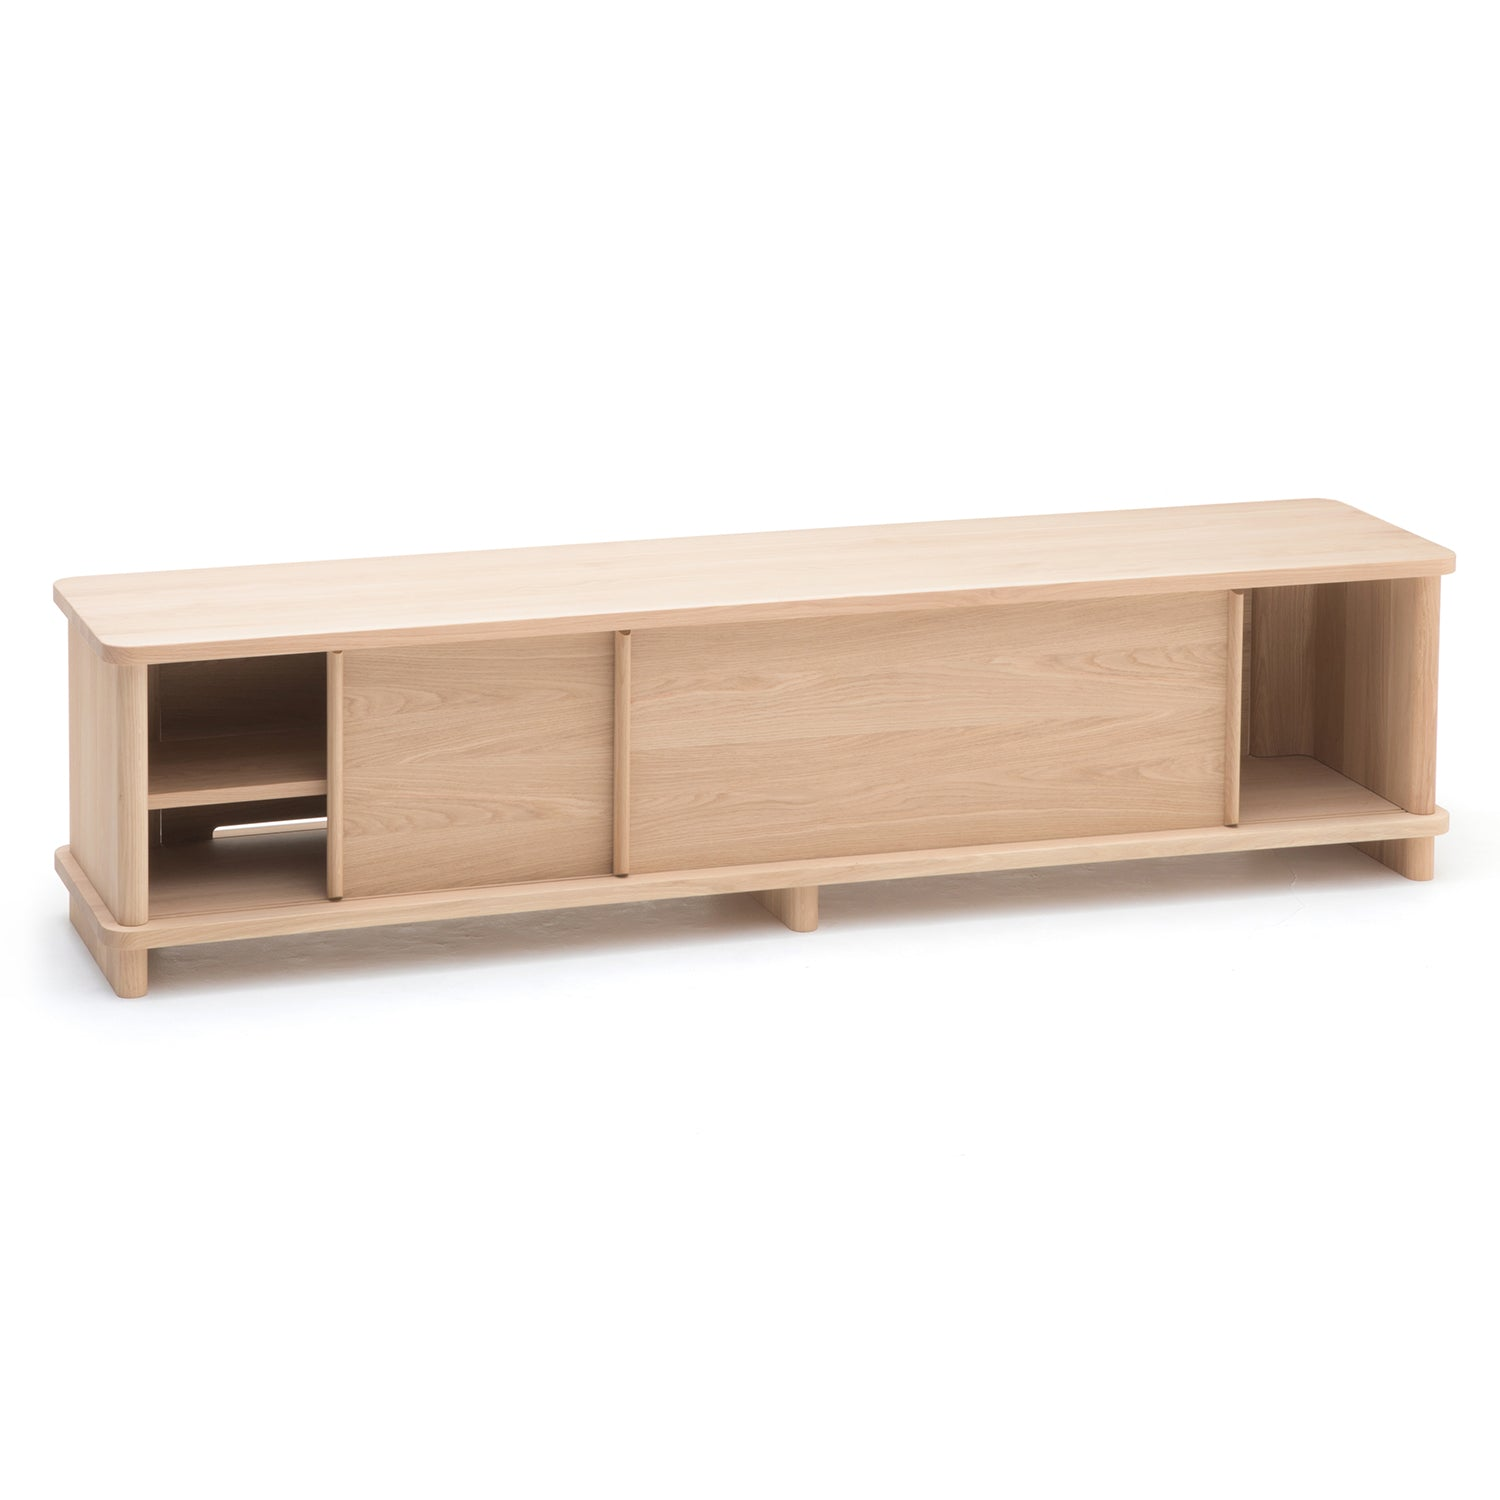 Prop TV Board: Large + Pure Oak